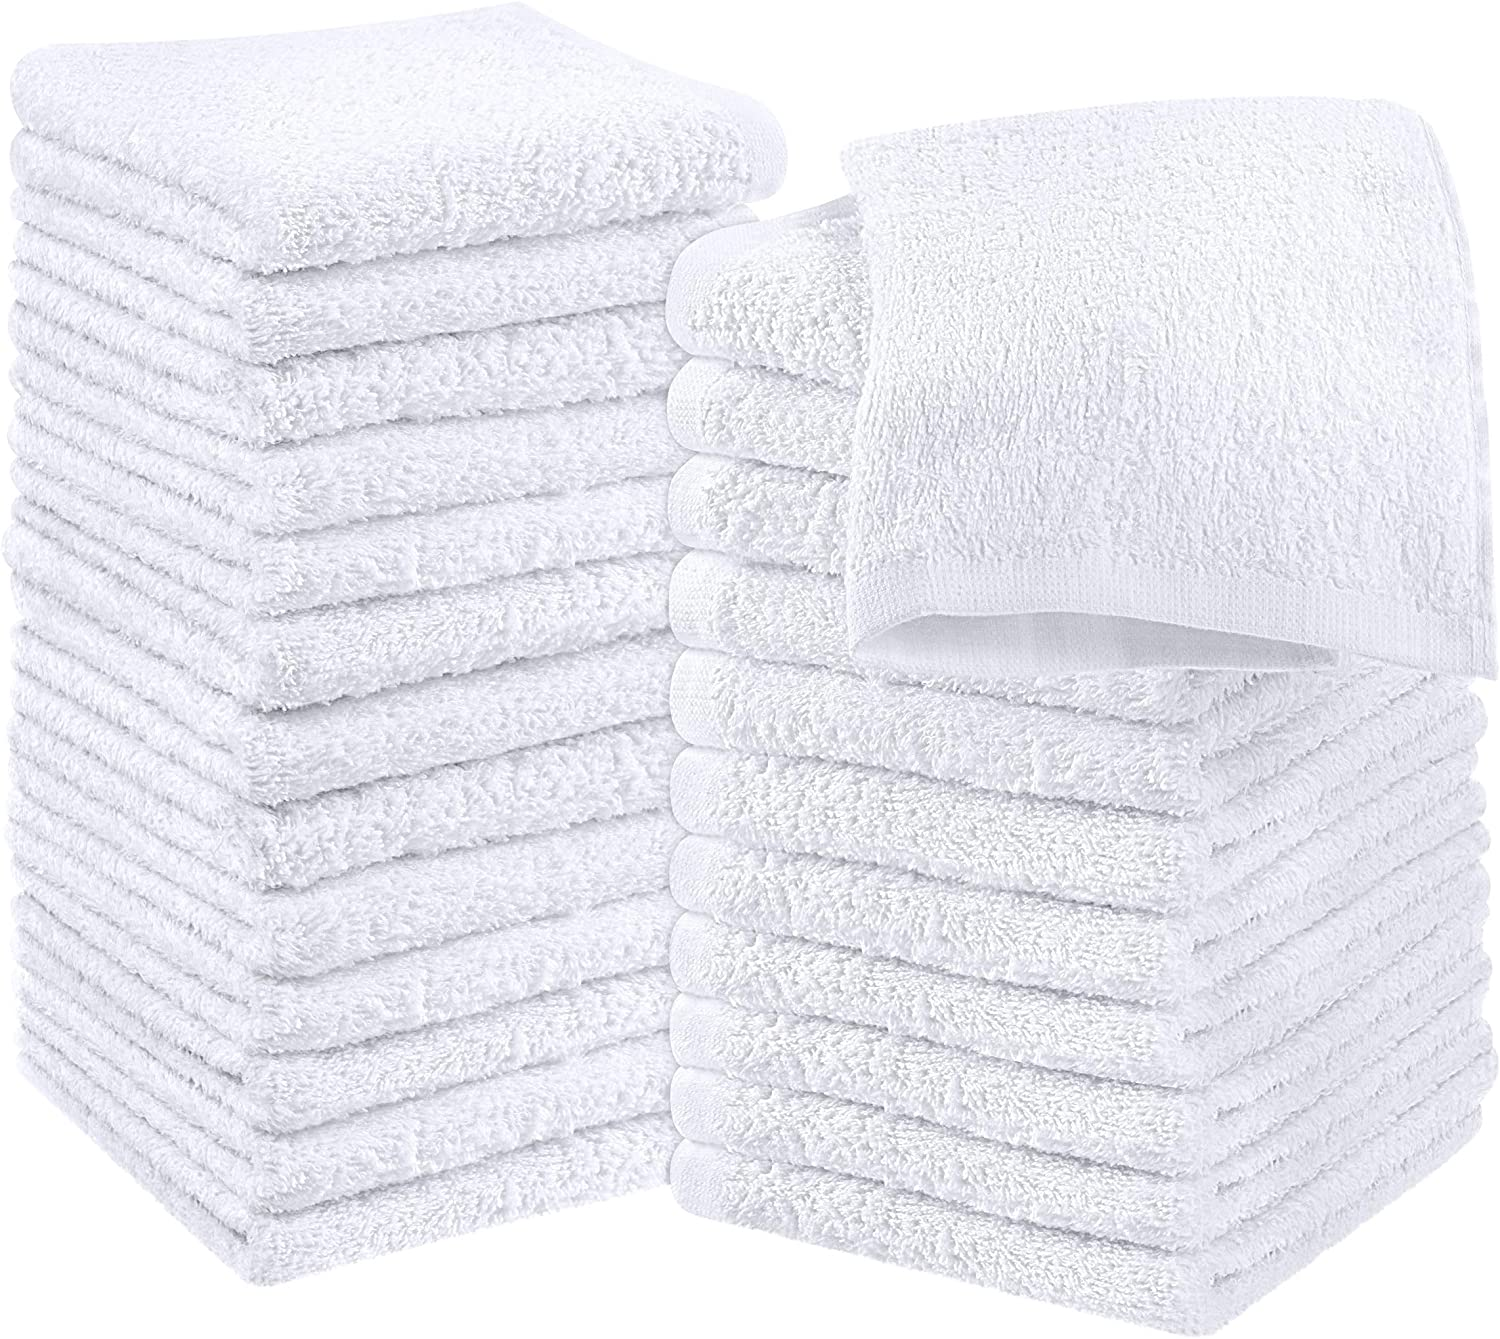 Utopia Towels Cotton White Washcloths Set - Pack of 24 - 100% Ring Spun Cotton, Premium Quality Flannel Face Cloths, Highly Absorbent and Soft Feel Fingertip Towels: Home & Kitchen